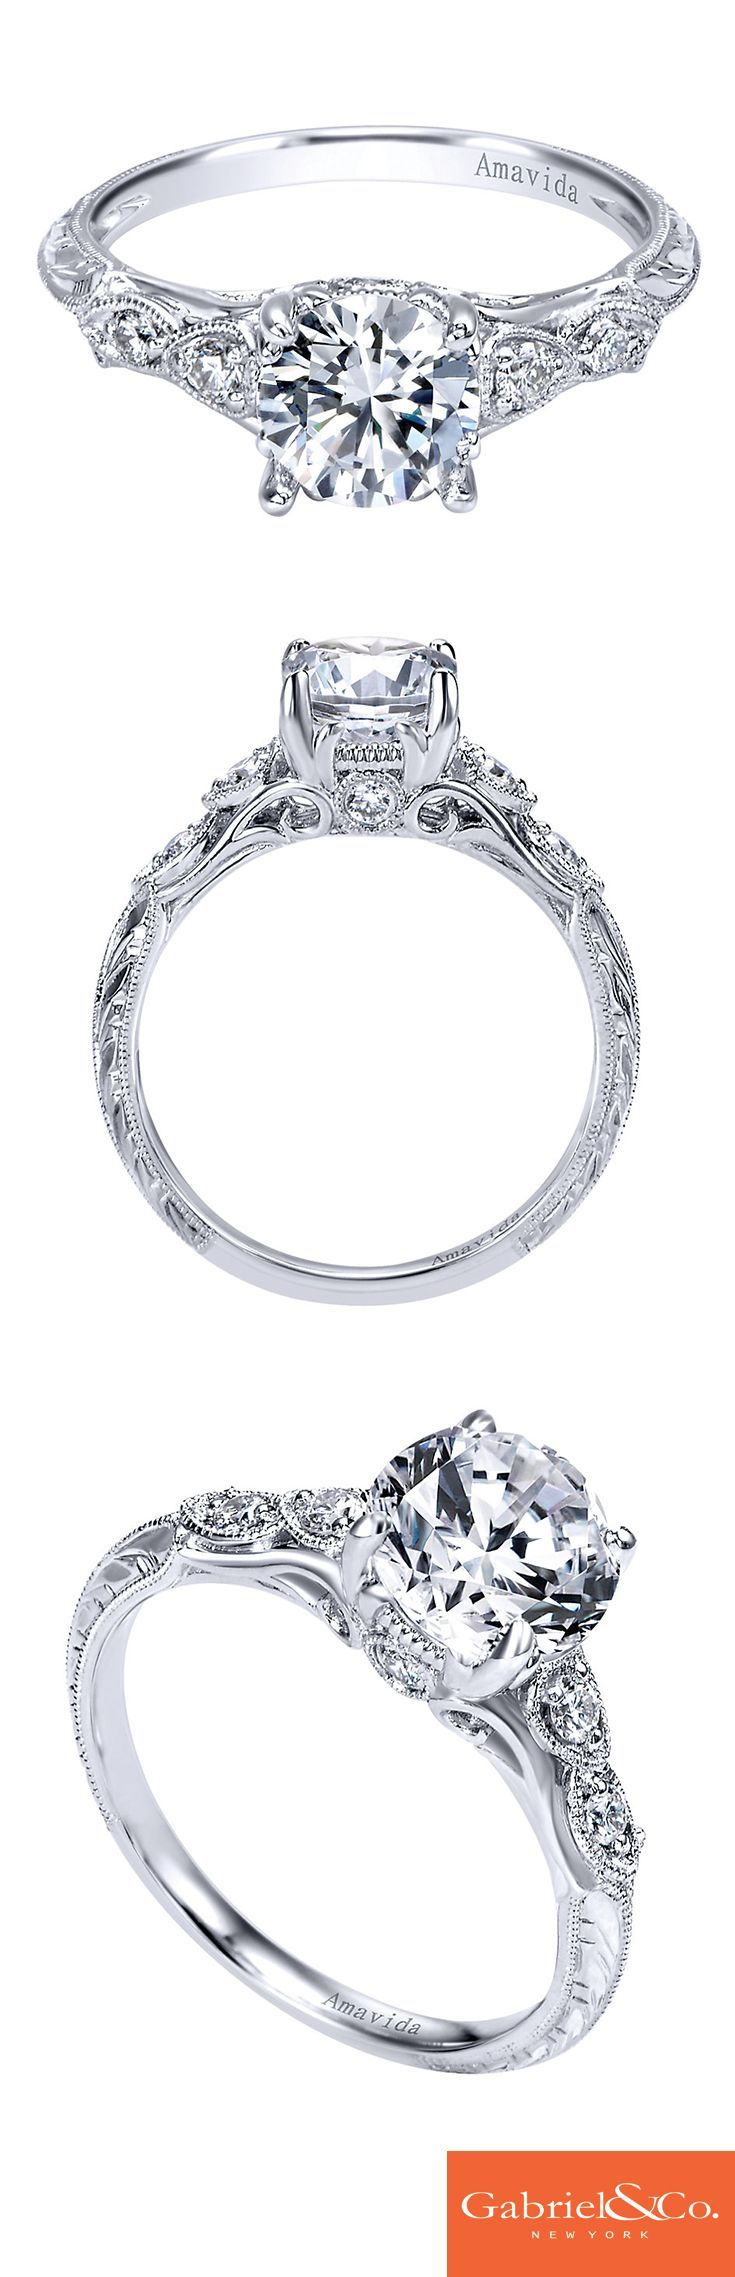 Engagement Rings | Fashion Jewelry